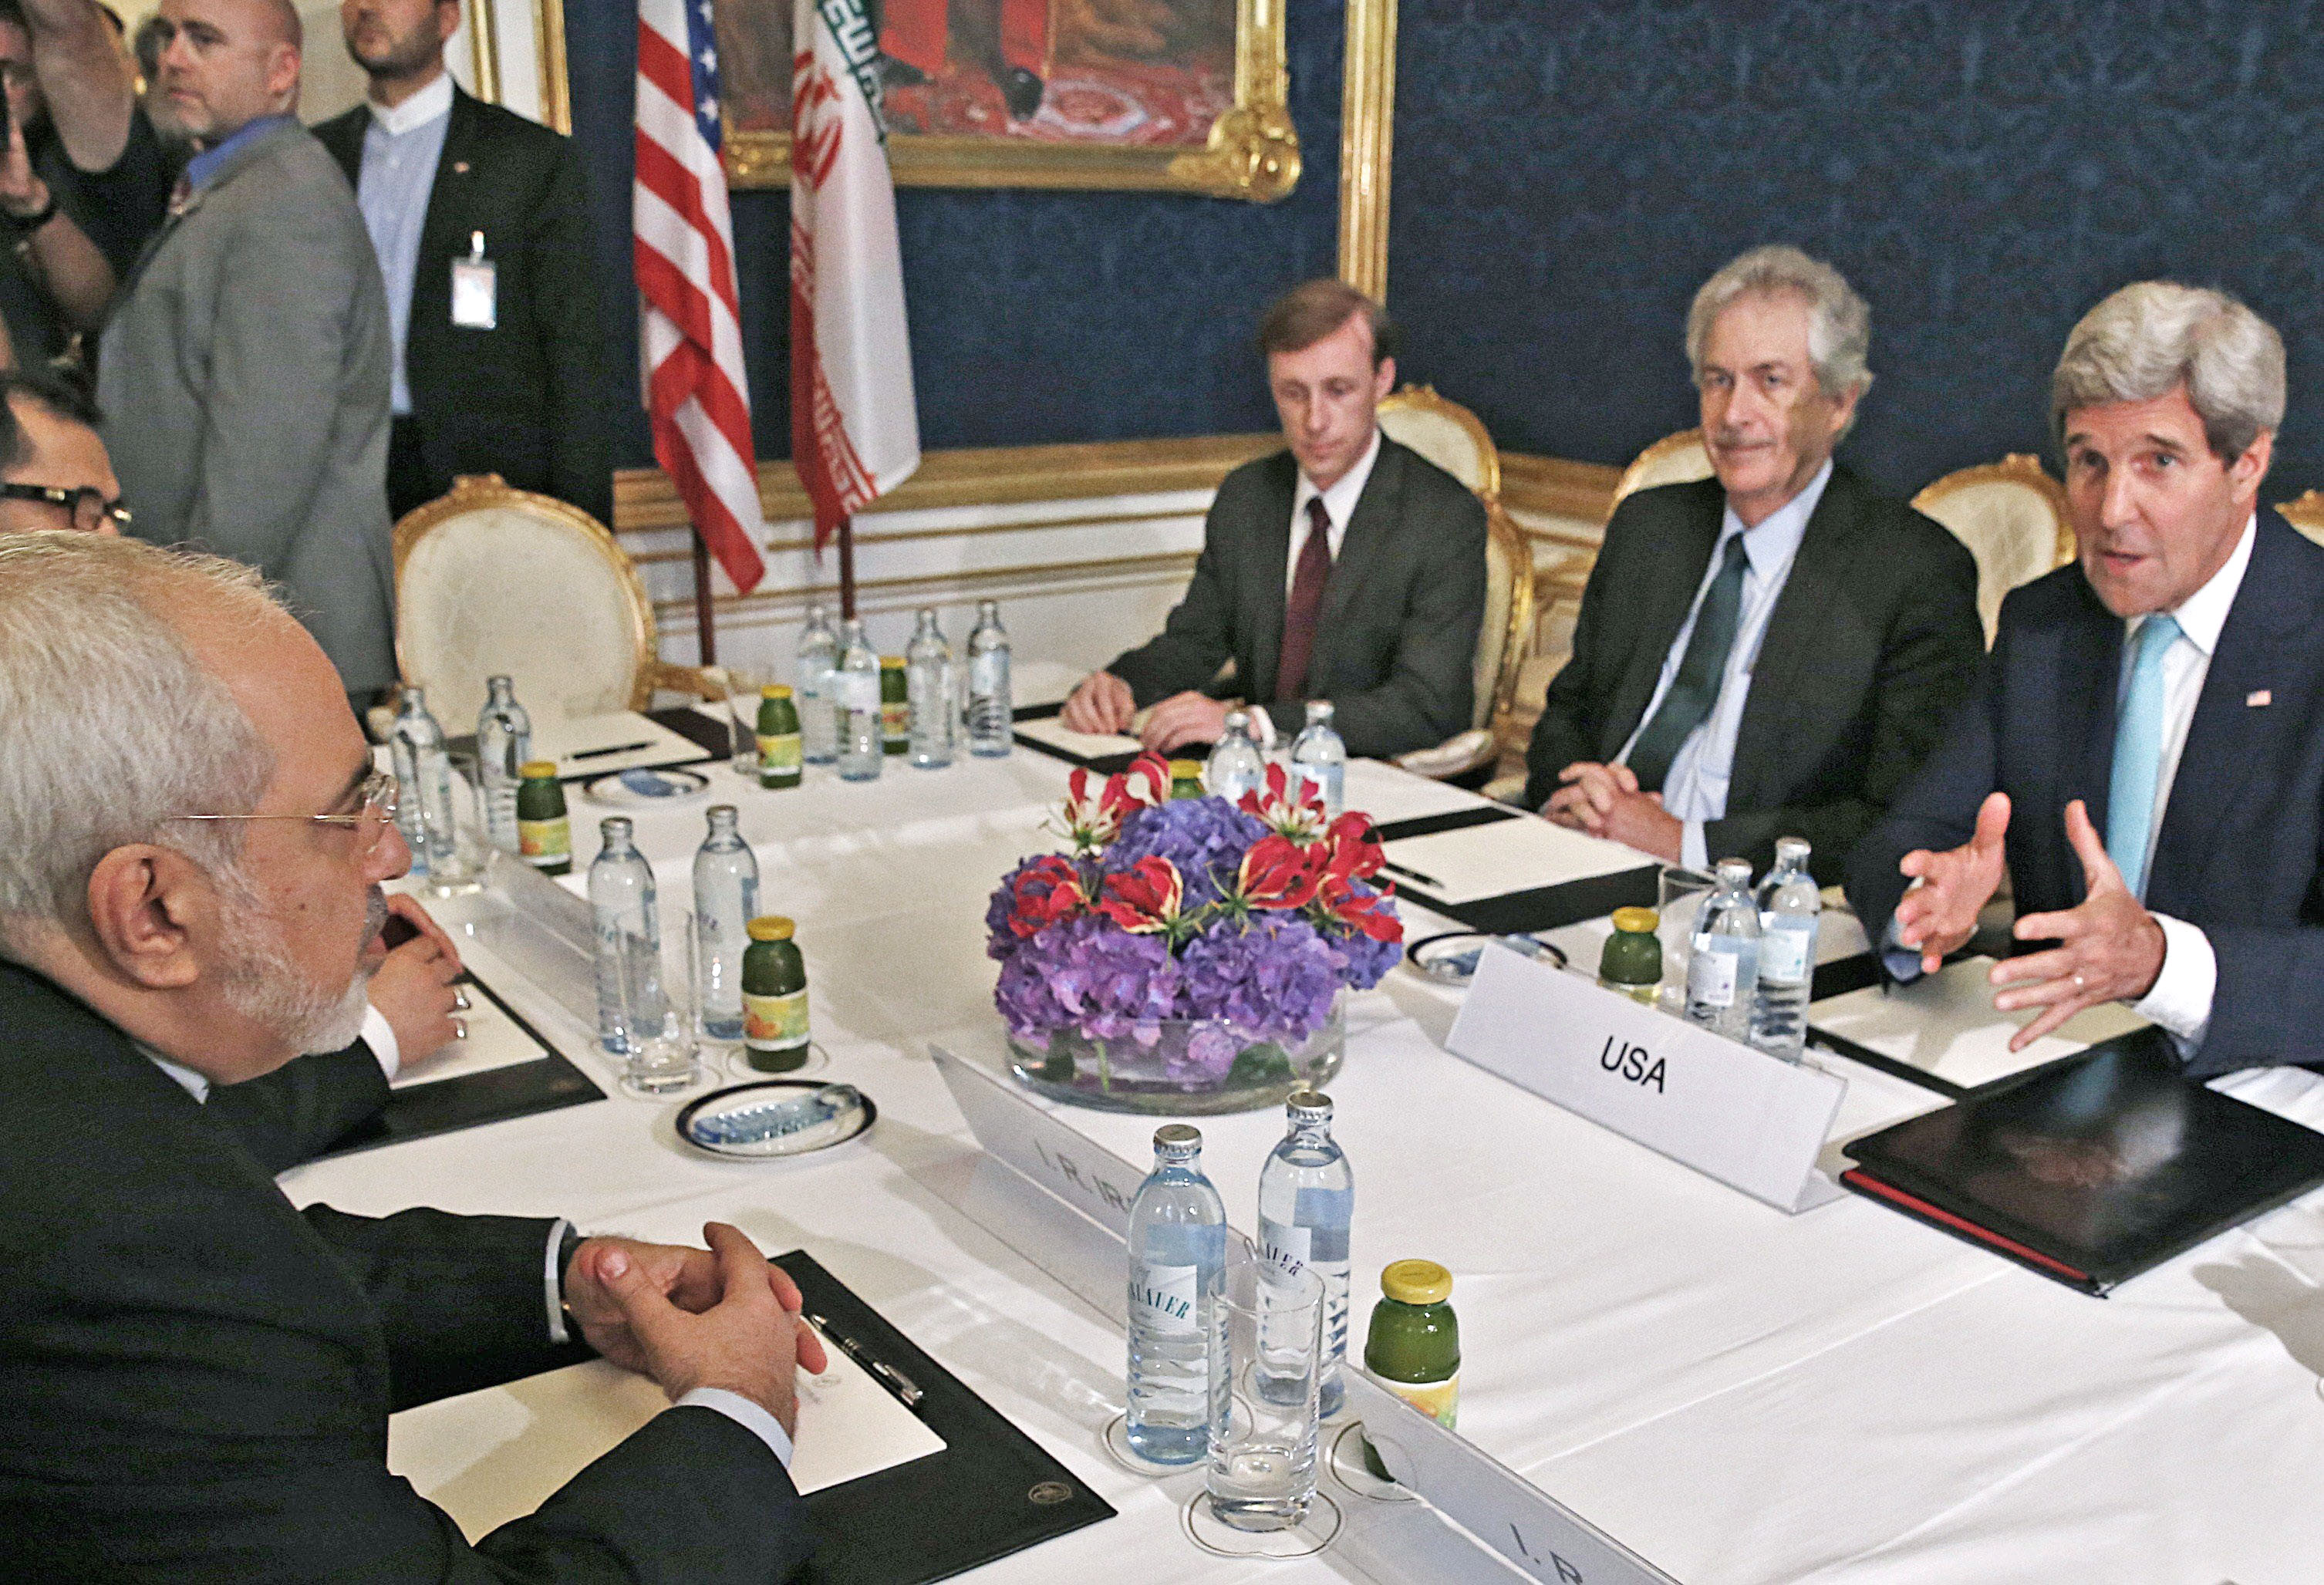 From left: Iran's Foreign Minister Mohammad Javad Zarif meets with U.S. Secretary of State John Kerry during talks between the foreign ministers of the six powers negotiating with Tehran on its nuclear program, in Vienna, on July 13, 2014.